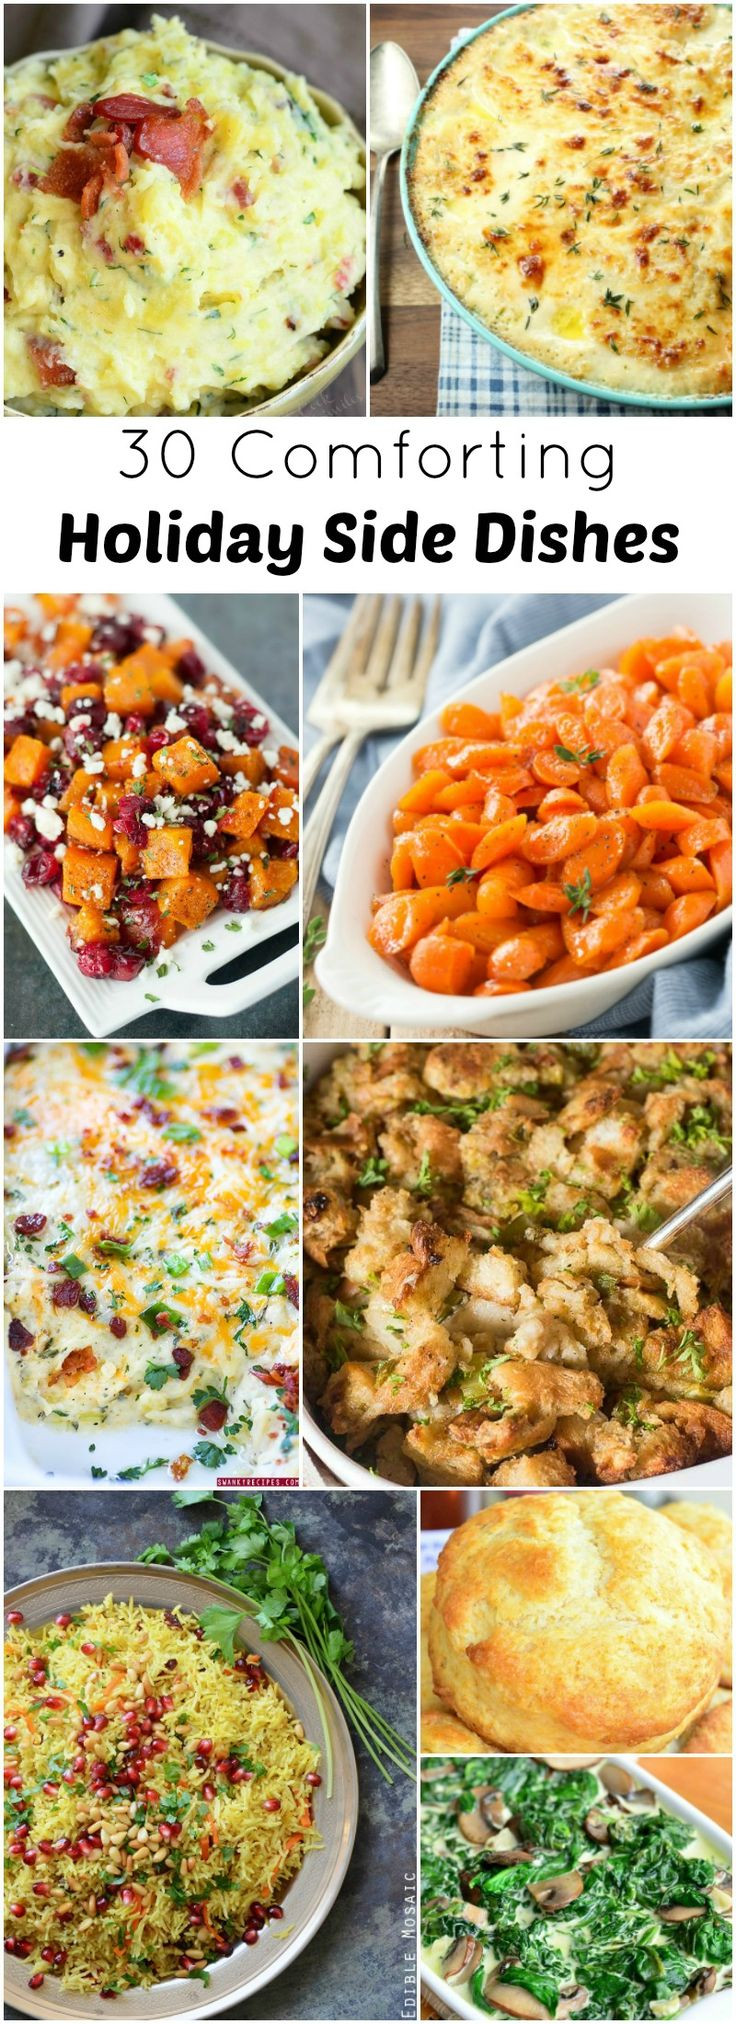 Best Side Dishes For Christmas Dinner  17 Best ideas about Holiday Side Dishes on Pinterest